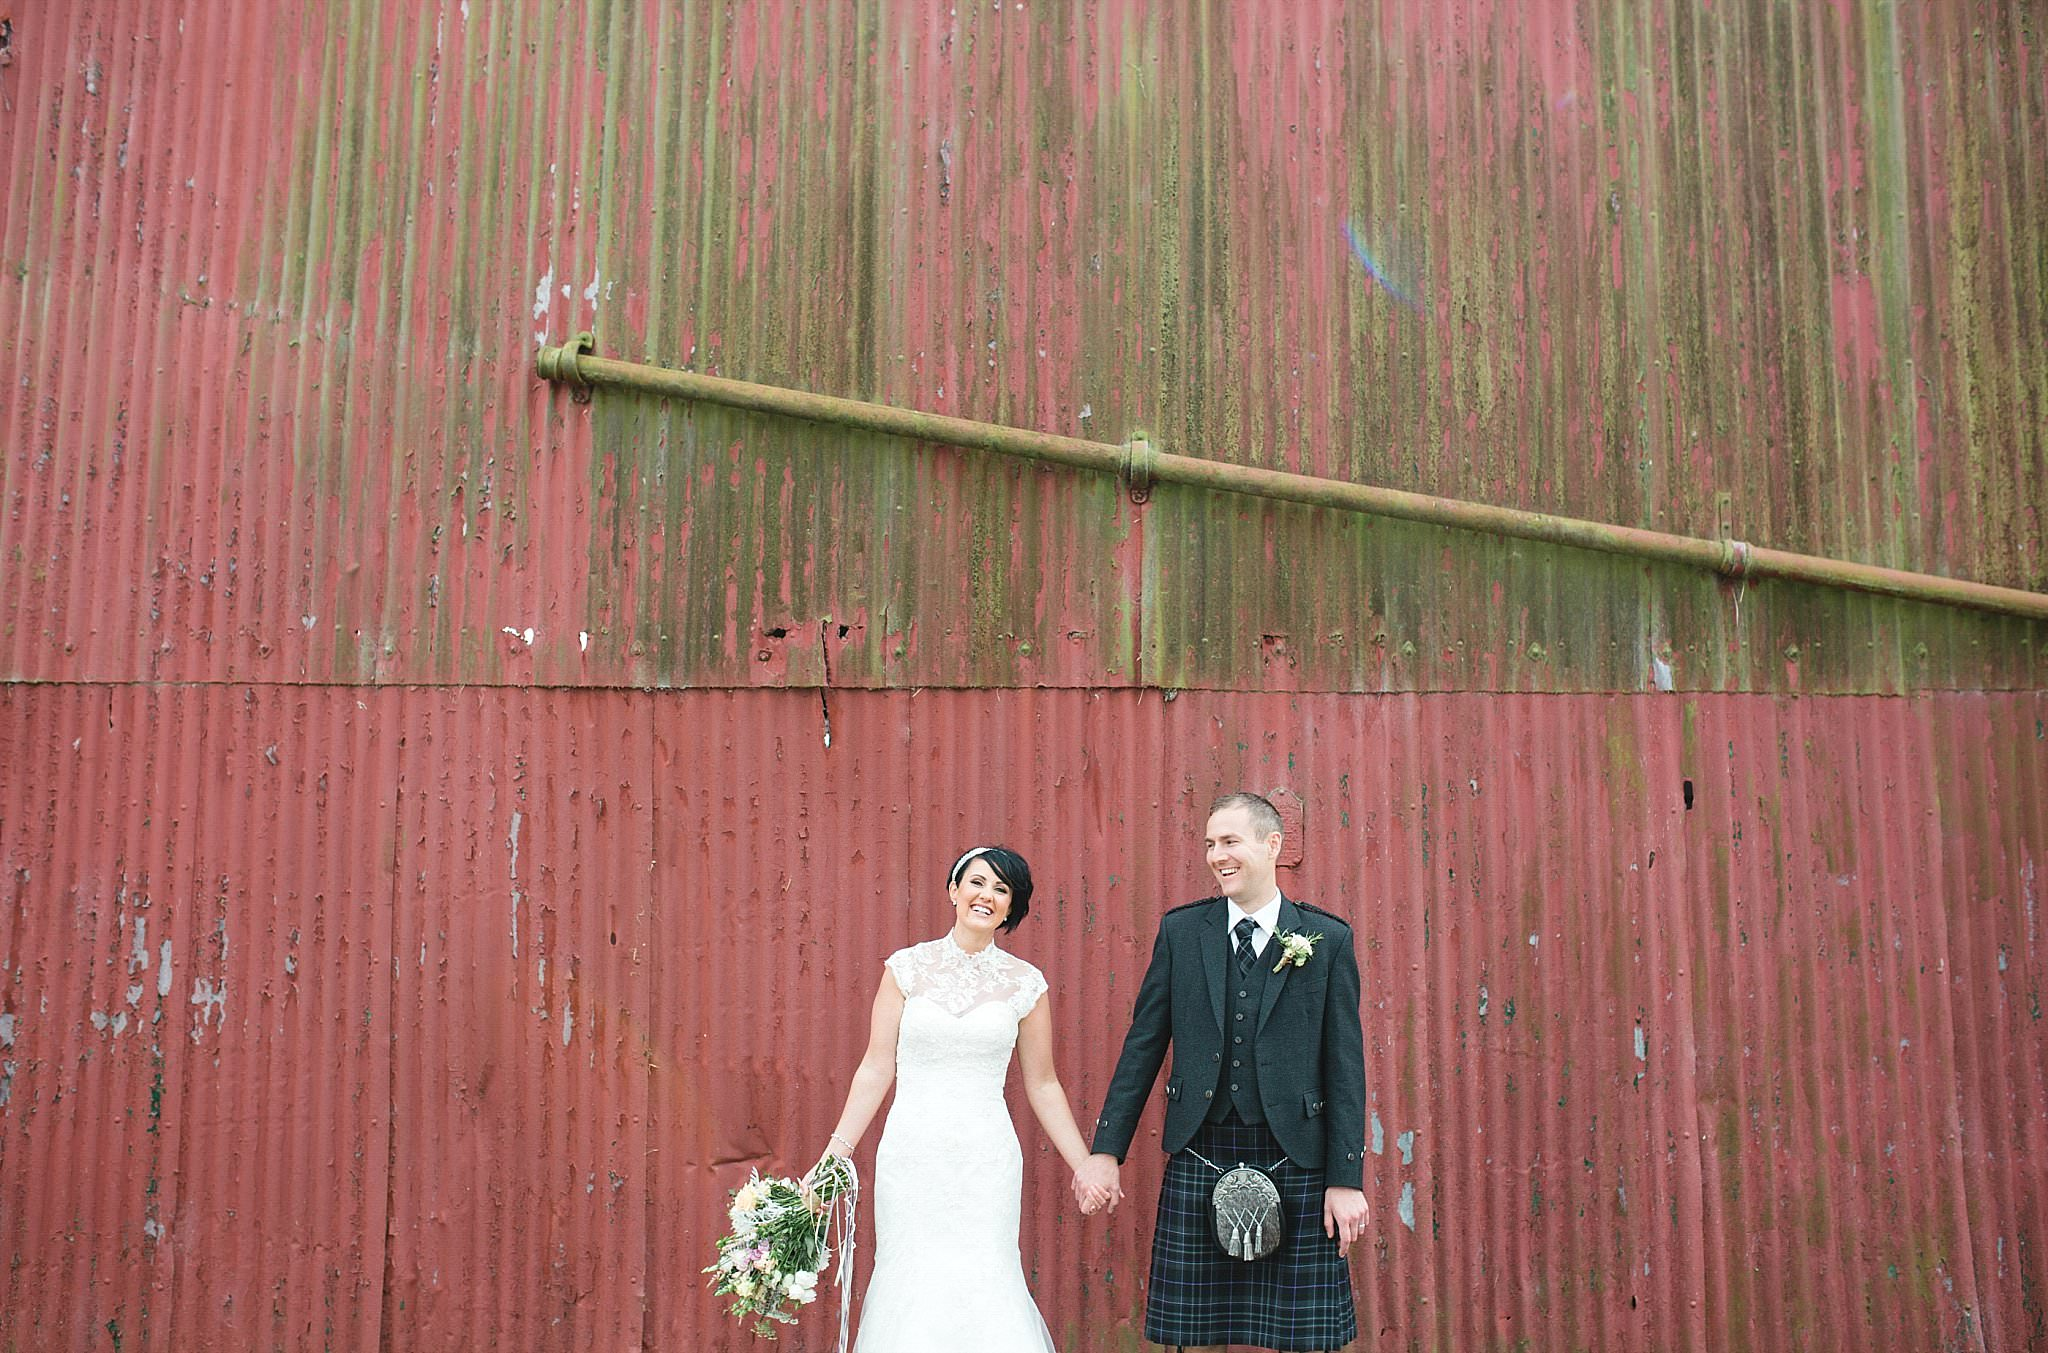 Fine Art Wedding Photographers Scotland,The Gibsons,barn wedding ayrshire,barn weddings scotland,dalduff farm wedding,glasgow wedding photographe: glasgow wedding photographers,natural wedding photographers,romantic photographers Scotland,